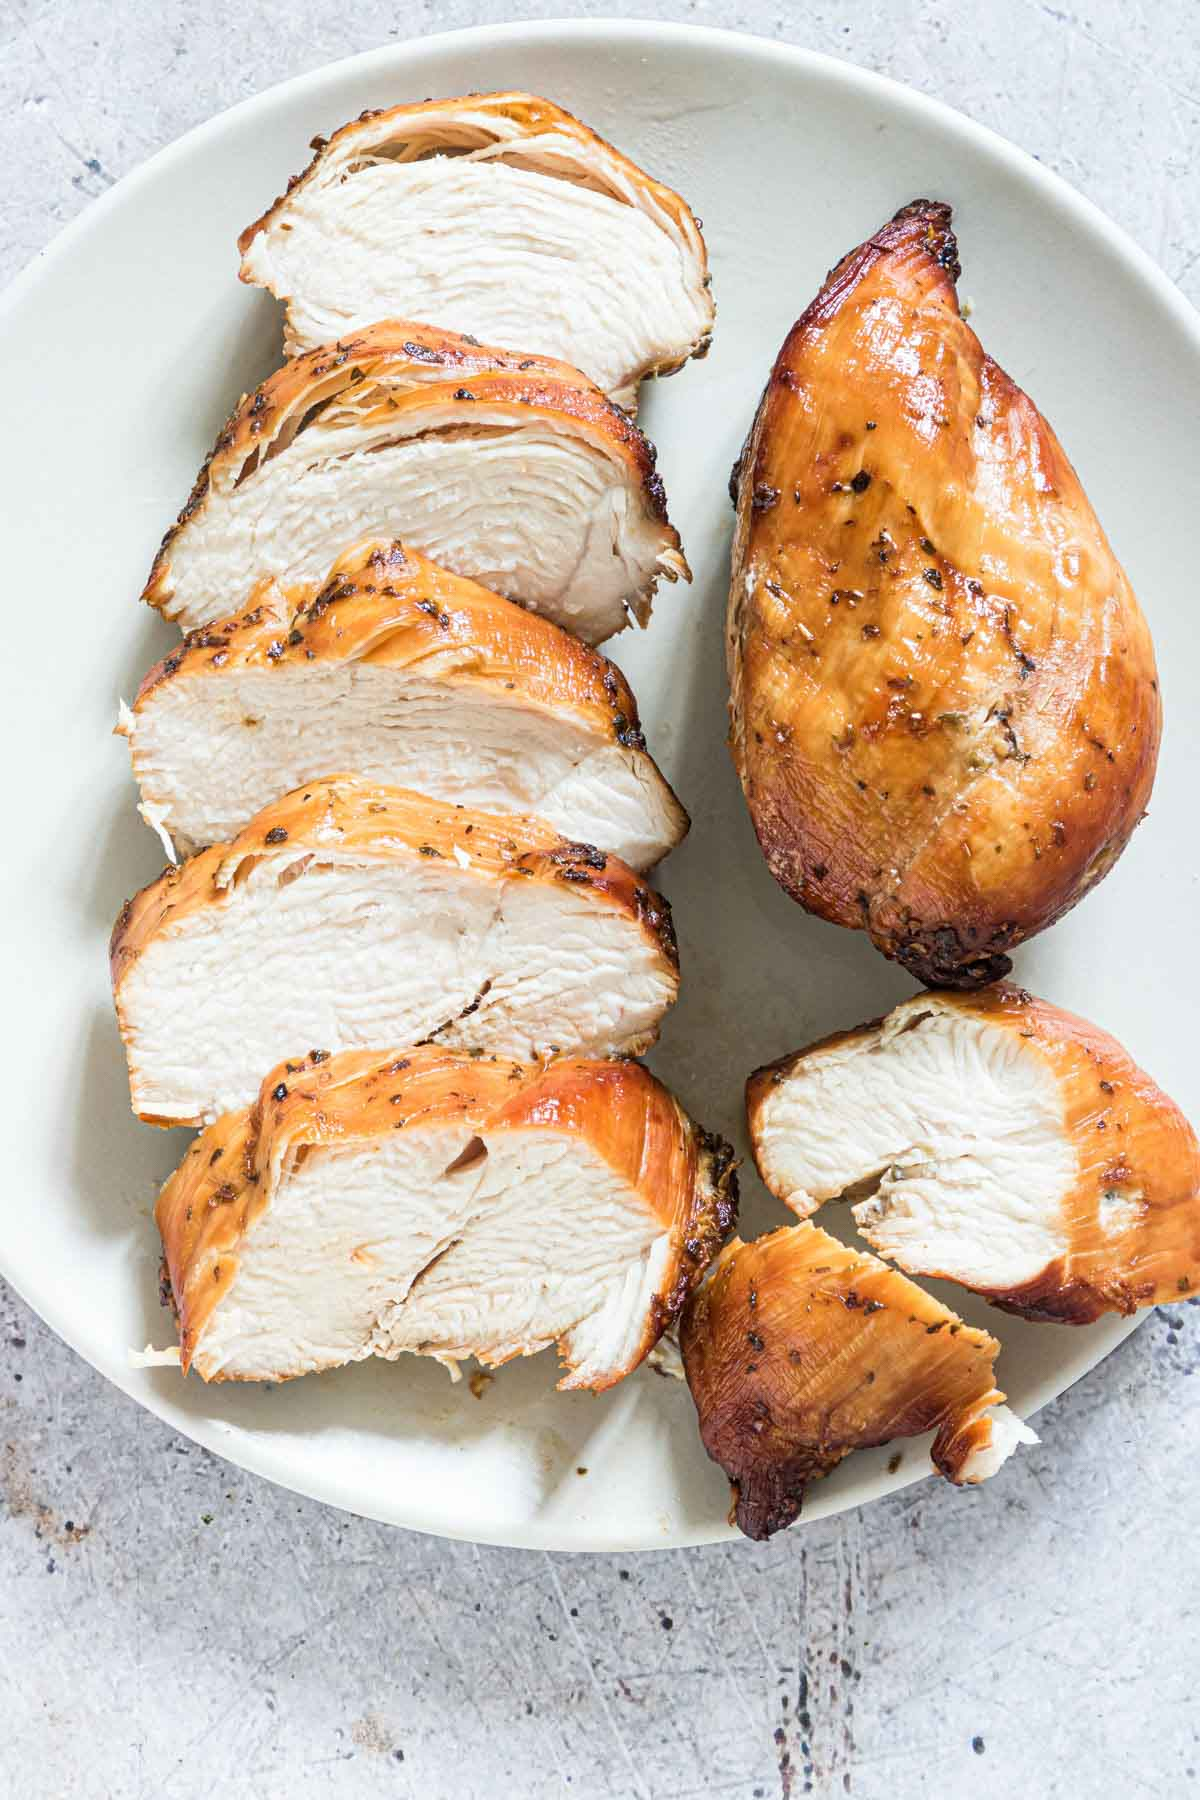 a plate filled with the cooked air fryer frozen chicken breast